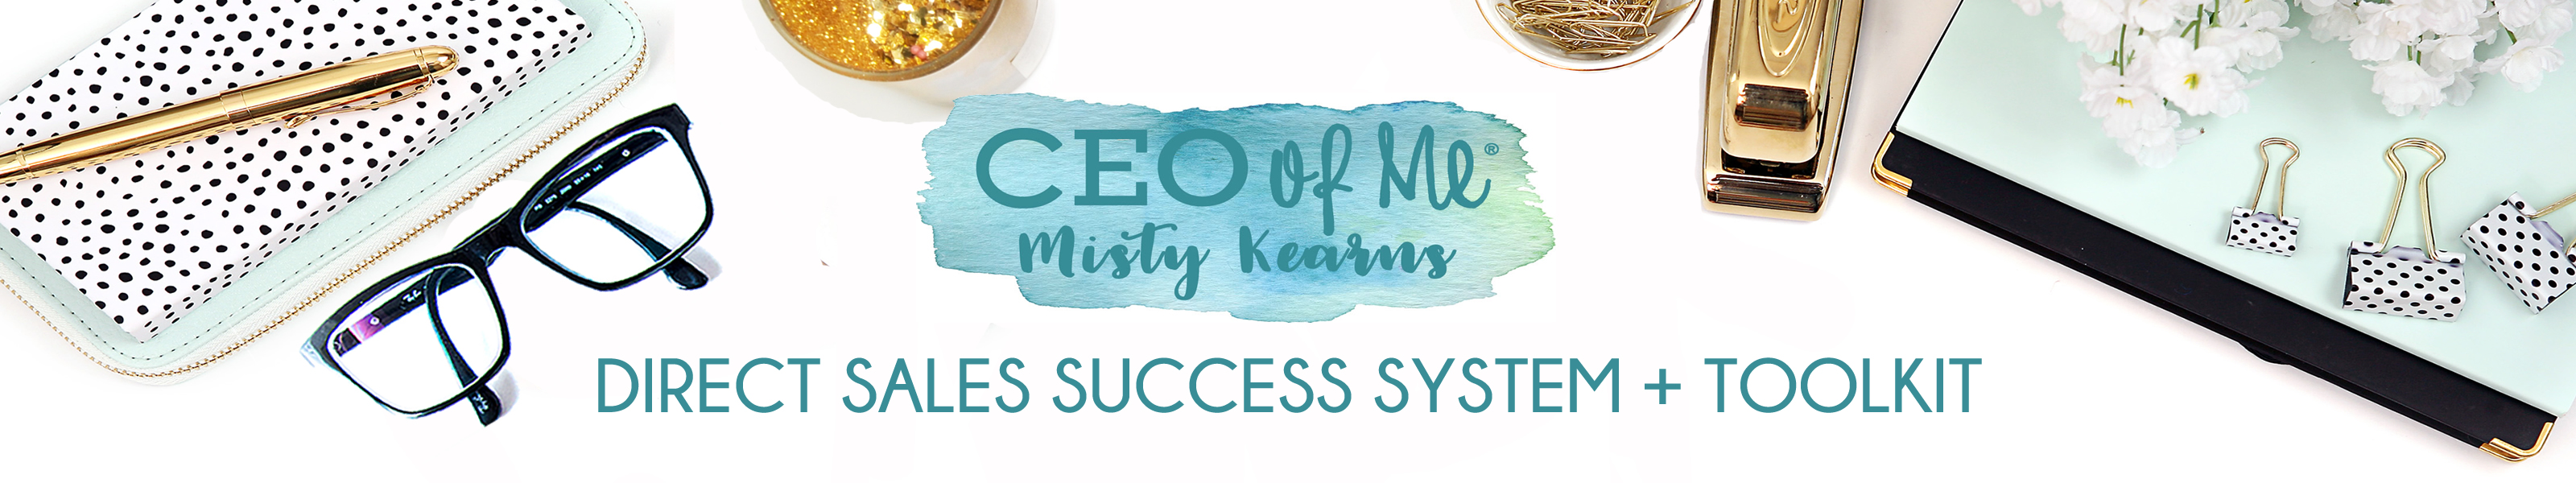 CEO of Me Direct Sales Success System Planner Business Toolkit